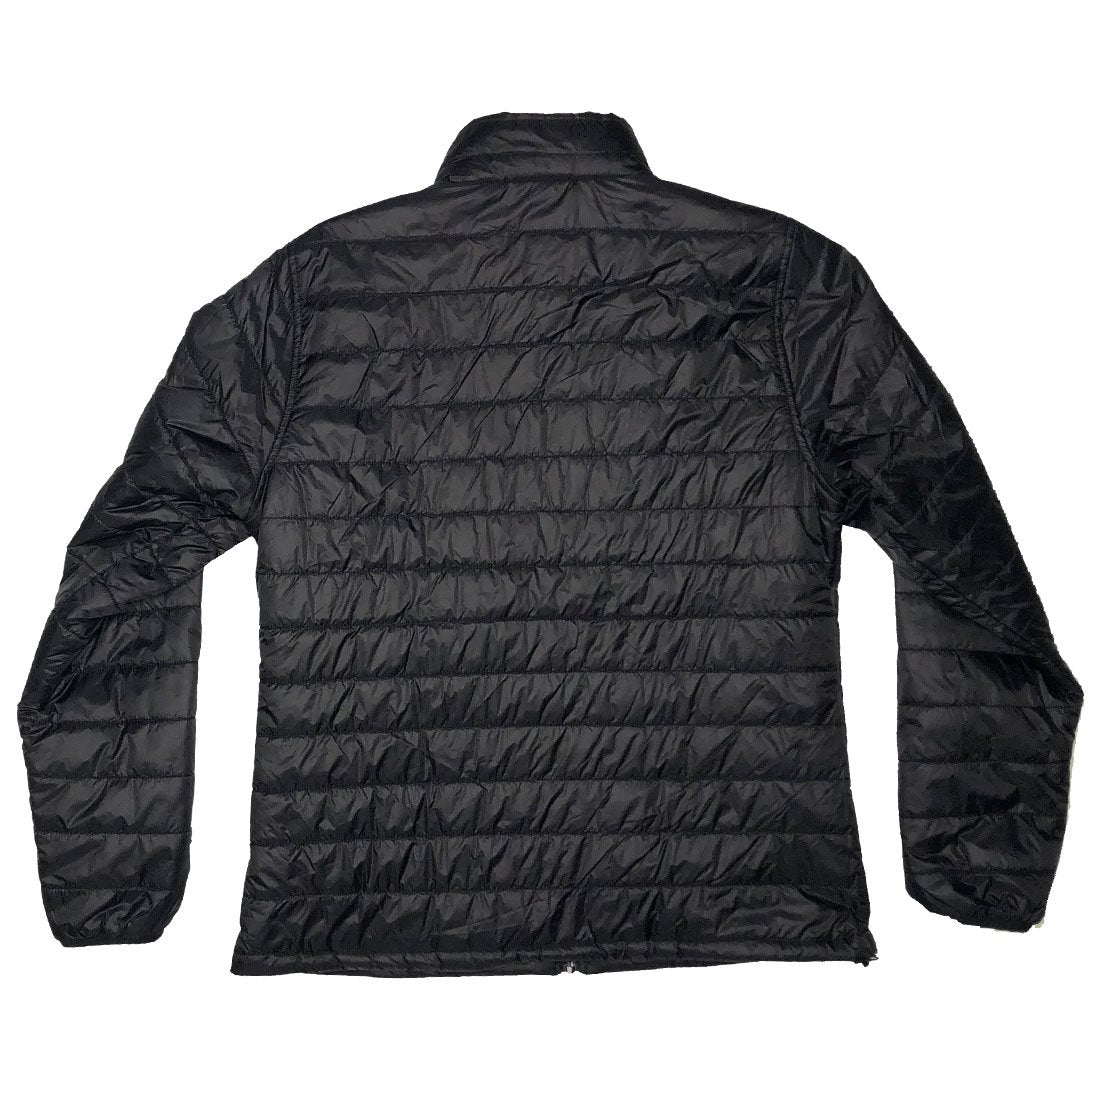 RIZNWILD | Black girls puffer jacket back view